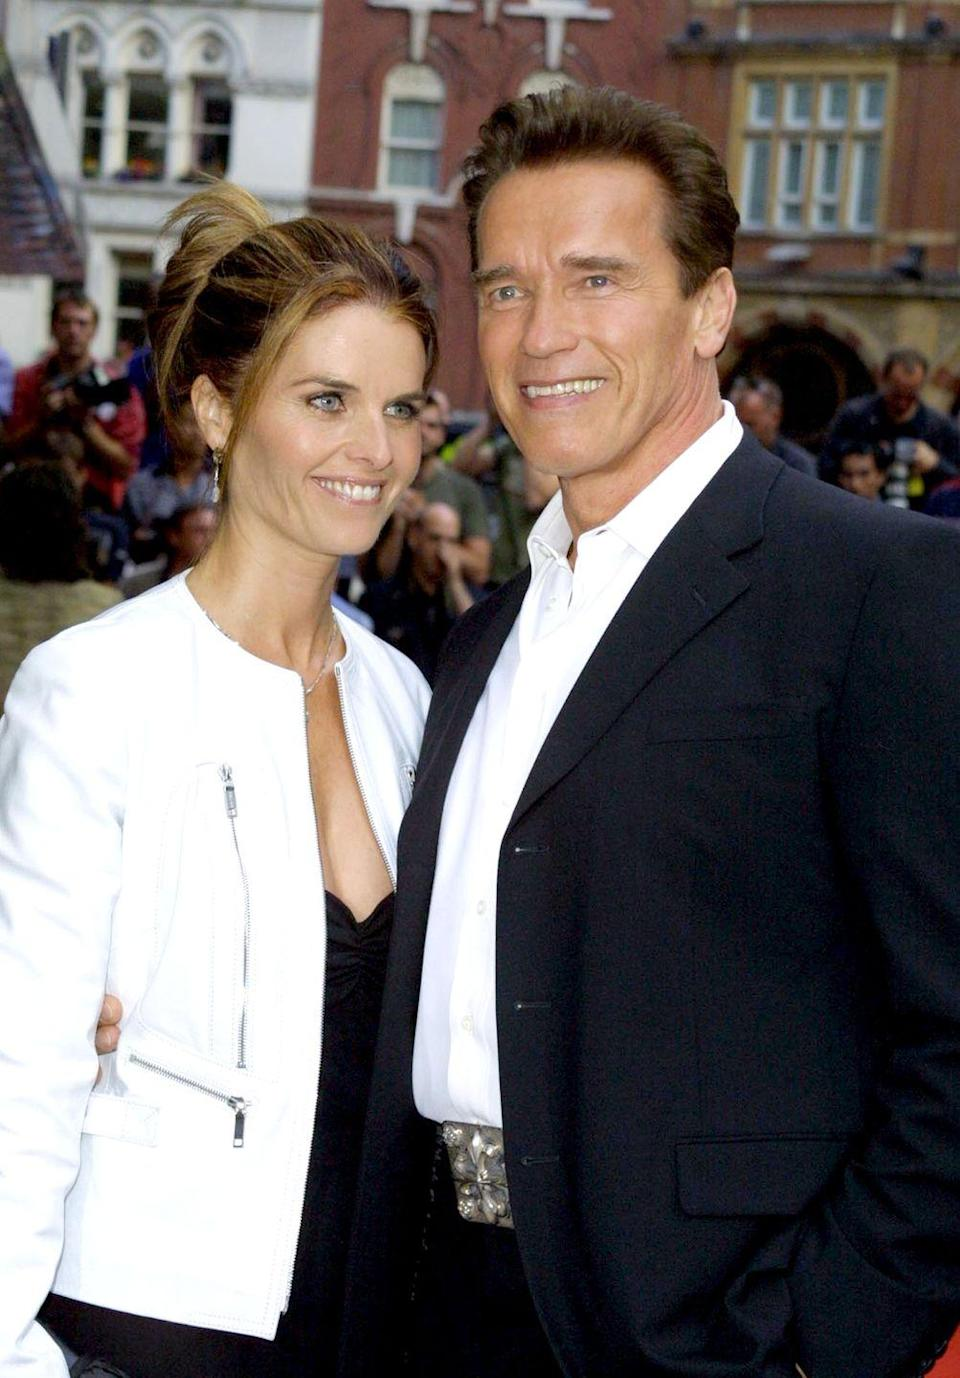 "<p>Schwarzenegger's affair with his housekeeper, Mildred Baena, was kept a secret for 14 years—even after he fathered a child <a href=""http://www.goodhousekeeping.com/life/entertainment/news/a46419/arnold-schwarzenegger-son-looks-like-him/"" rel=""nofollow noopener"" target=""_blank"" data-ylk=""slk:who looks exactly like him"" class=""link rapid-noclick-resp"">who looks exactly like him</a> with her. ""You can't go back—if I could, in reality, be Terminator, of course I would go back in time and would say, 'Arnold...no,'"" he told <em><a href=""https://www.mensjournal.com/features/arnold-schwarzeneggers-picks-his-next-fight-w469845"" rel=""nofollow noopener"" target=""_blank"" data-ylk=""slk:Men's Journal"" class=""link rapid-noclick-resp"">Men's Journal</a>. </em>""You know, it's always easy to be smart in hindsight. That's not the way it works.""</p>"